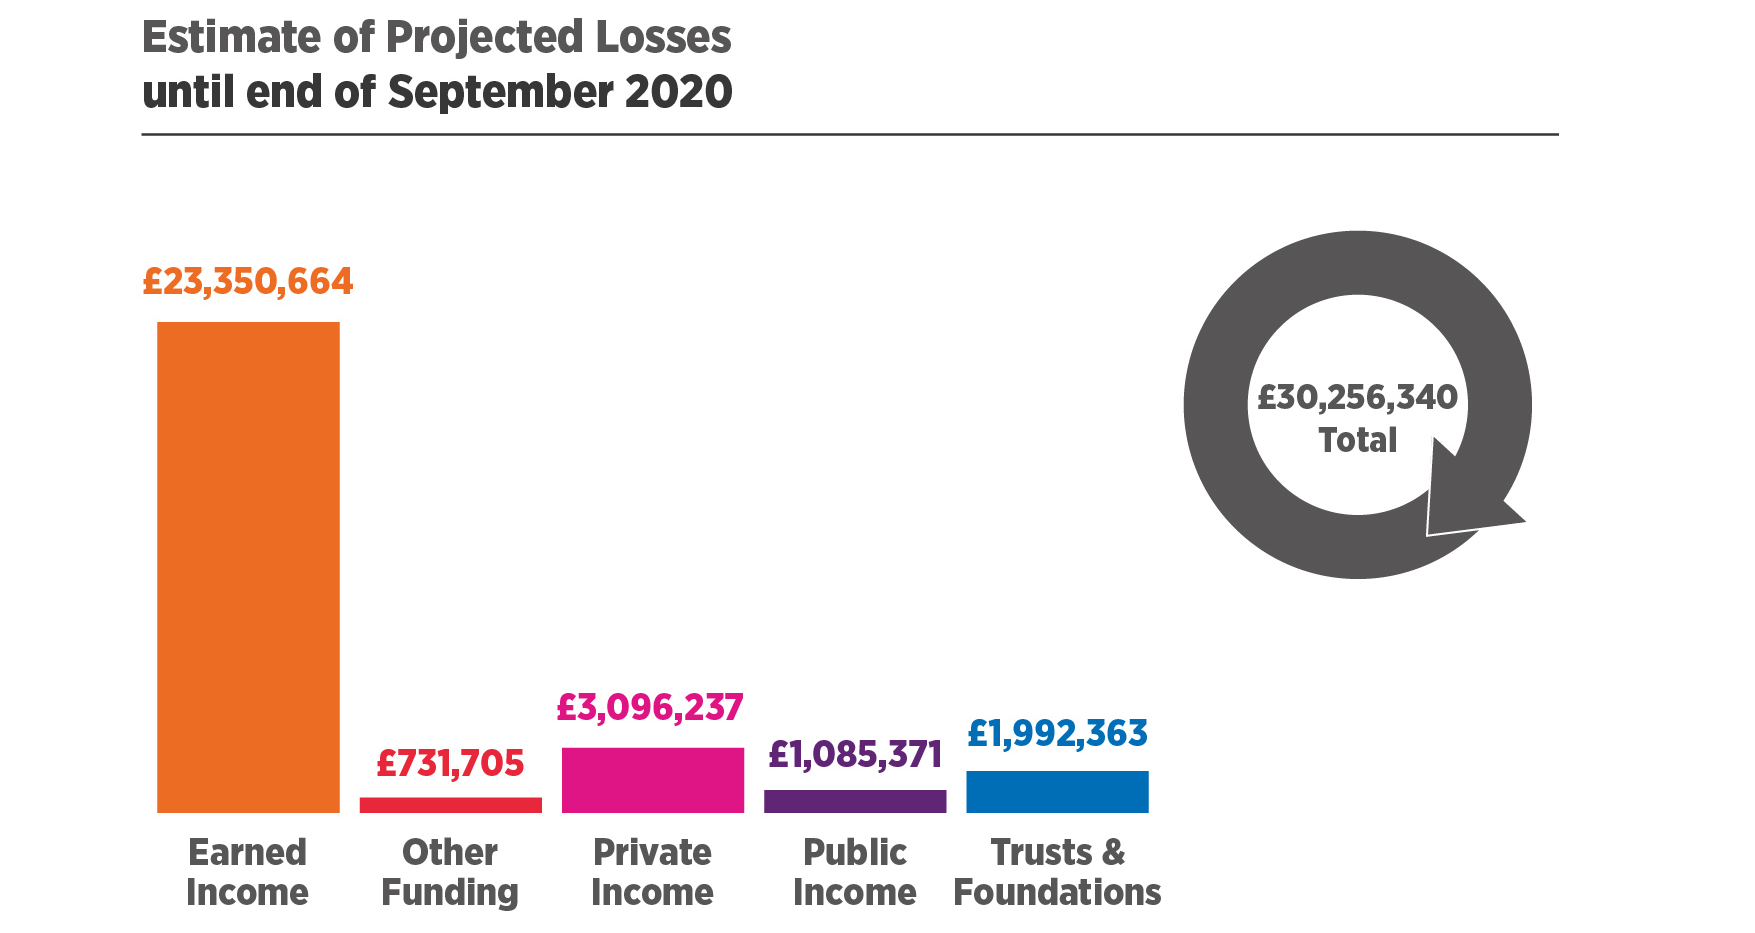 Estimate of Projected Losses until end of September 2020.   Earned Income = £23,350,664, Other Funding = £731,705, Private Income = £3,096,237, Public Income = £1,085,371, Trusts & Foundations = £1,992,363. £30,256,340 Total